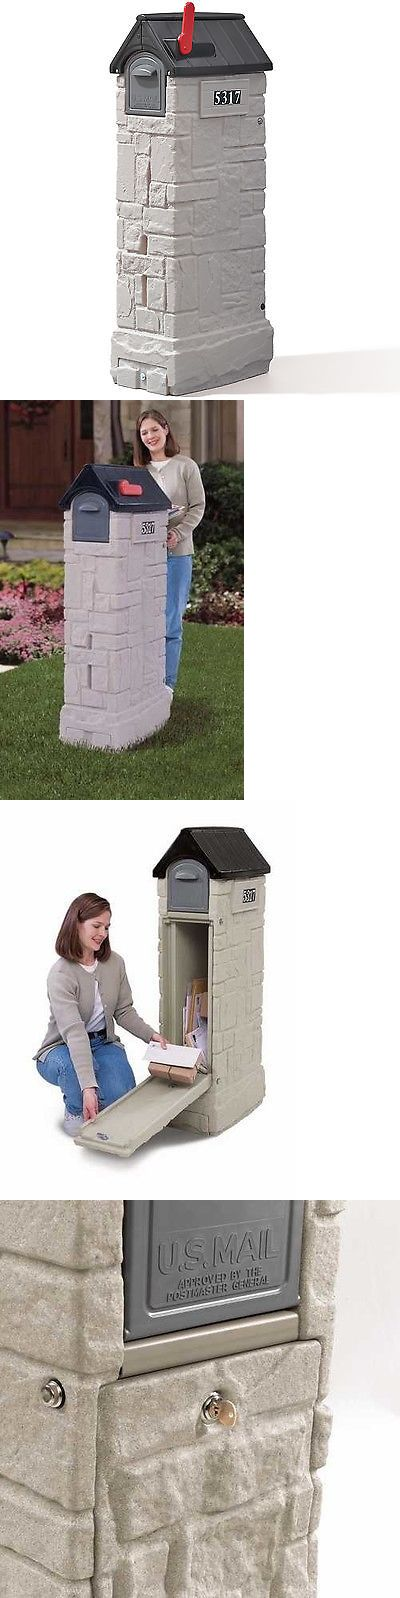 Mailboxes and Slots 20599: Step2 Locking Column Box -> BUY IT NOW ONLY: $141.99 on eBay!